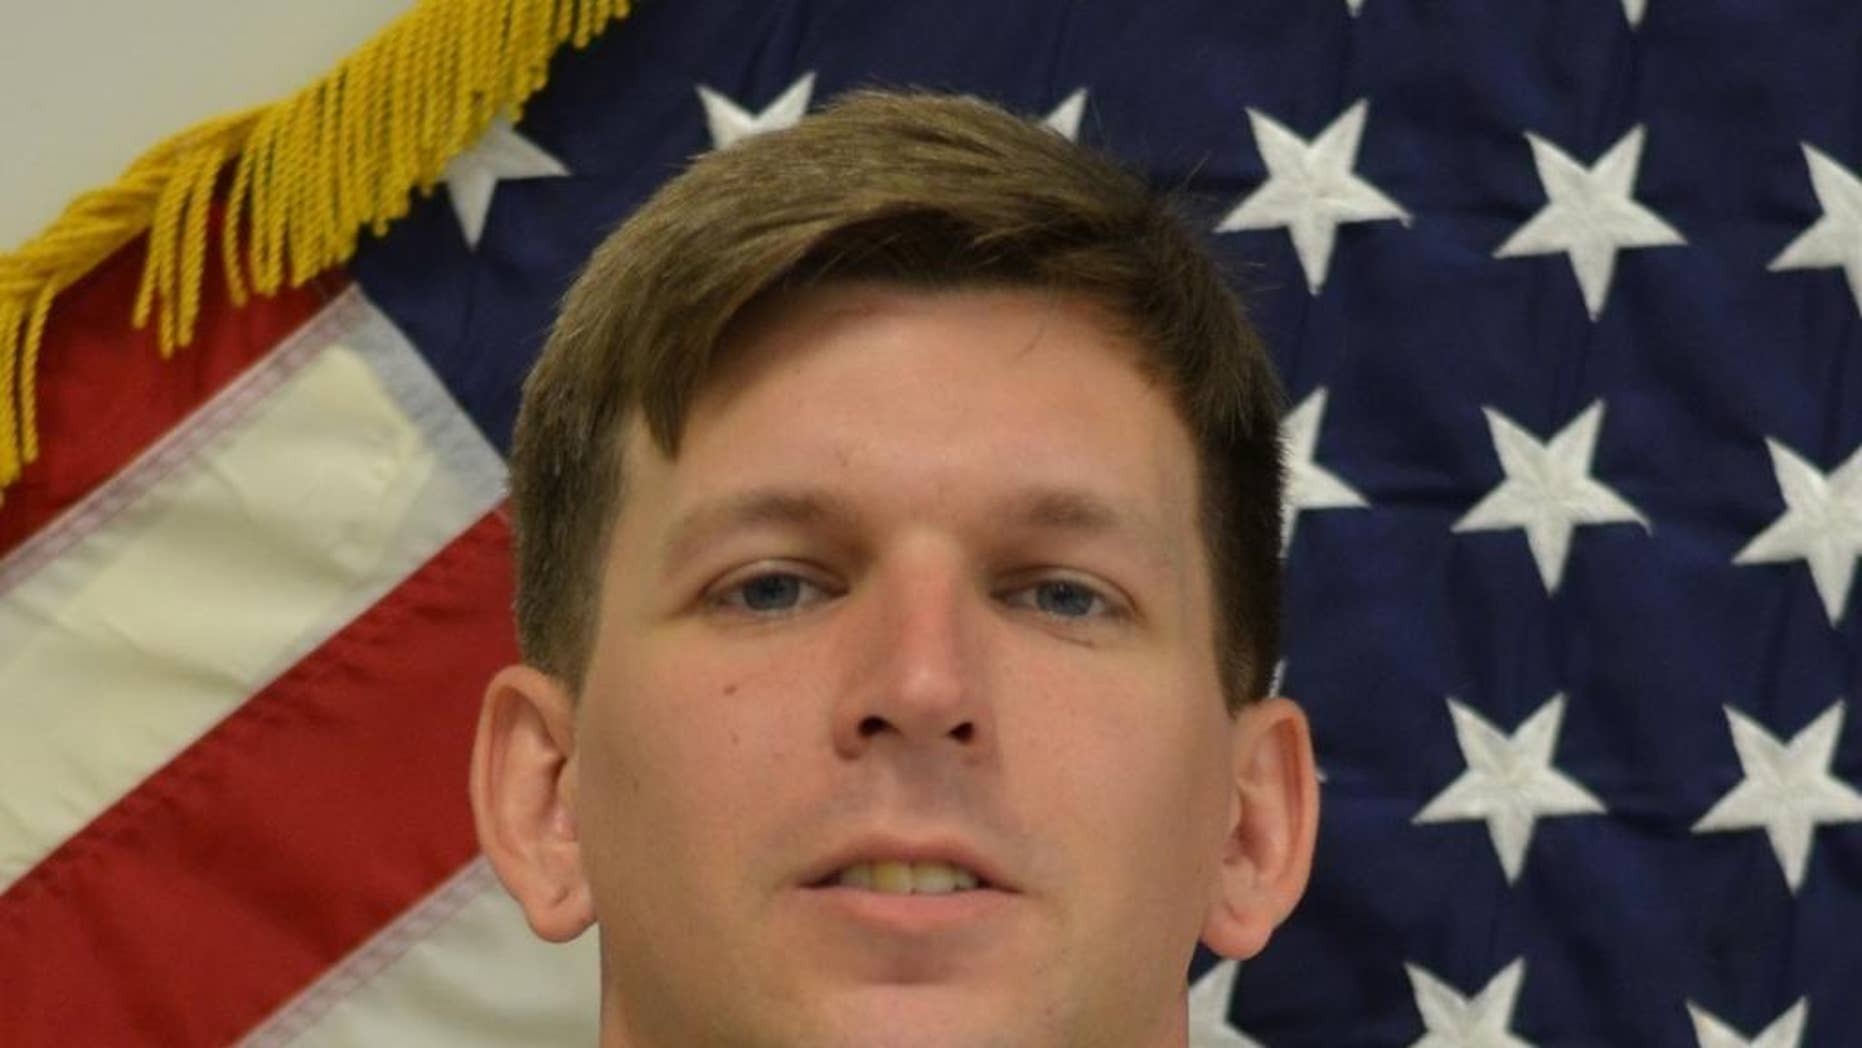 This image provided by the US Army shows  Christopher Hoch. Kentucky State Police say in a statement it appears 35-year-old Jeremy Demar of Clarksville, Tennessee, was in a domestic dispute with his estranged wife, 32-year-old Priscilla Ann East, and found her at a home in Oak Grove, Kentucky, where he forced his way in Thursday night and fatally shot her and 28-year-old Hoch. (US Army via AP)